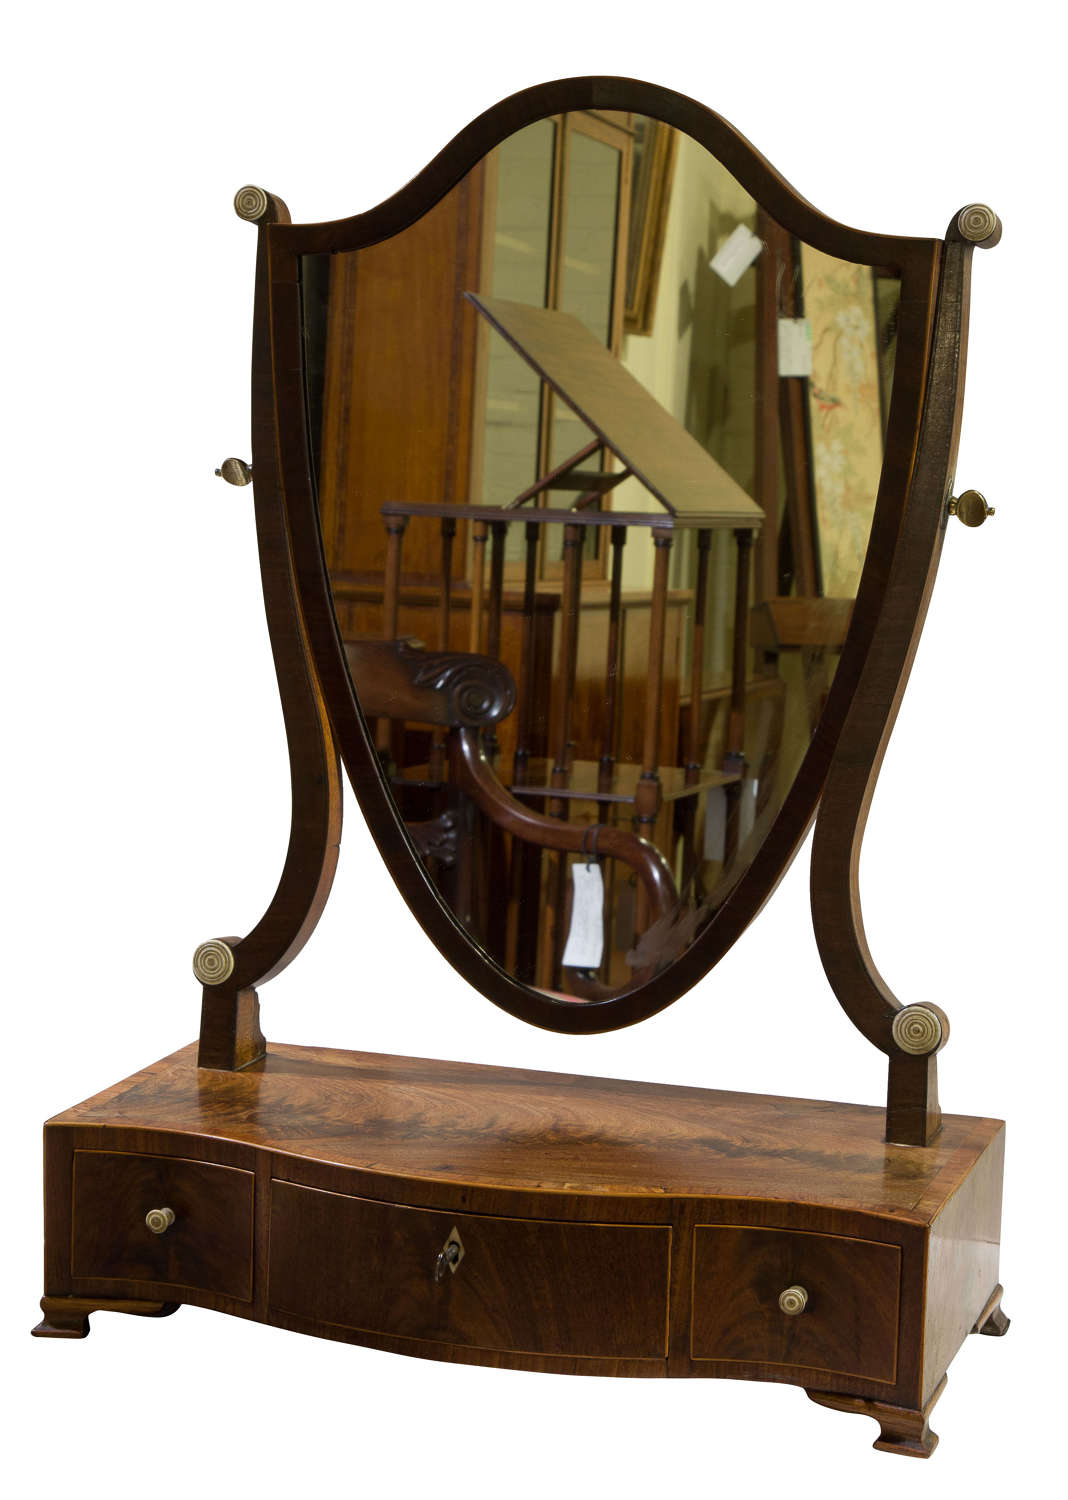 Early 19thc shield shaped dressing table mirror